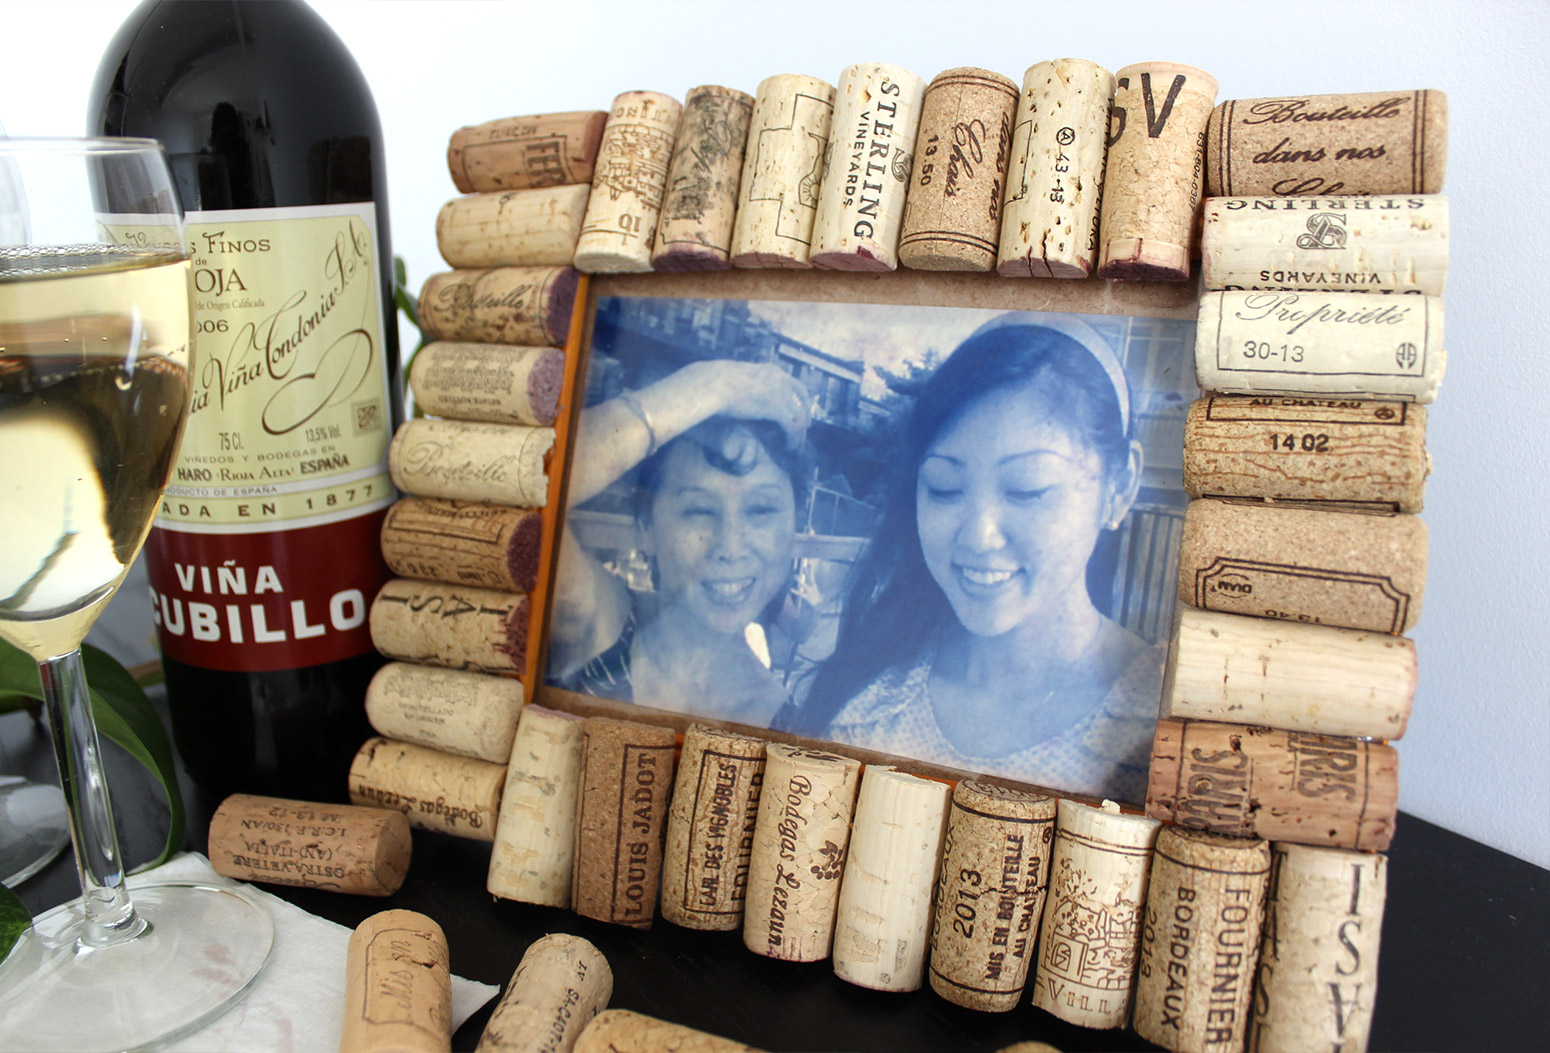 How To Make A Cute And Rustic Picture Frame Using Recycled Wine Corks